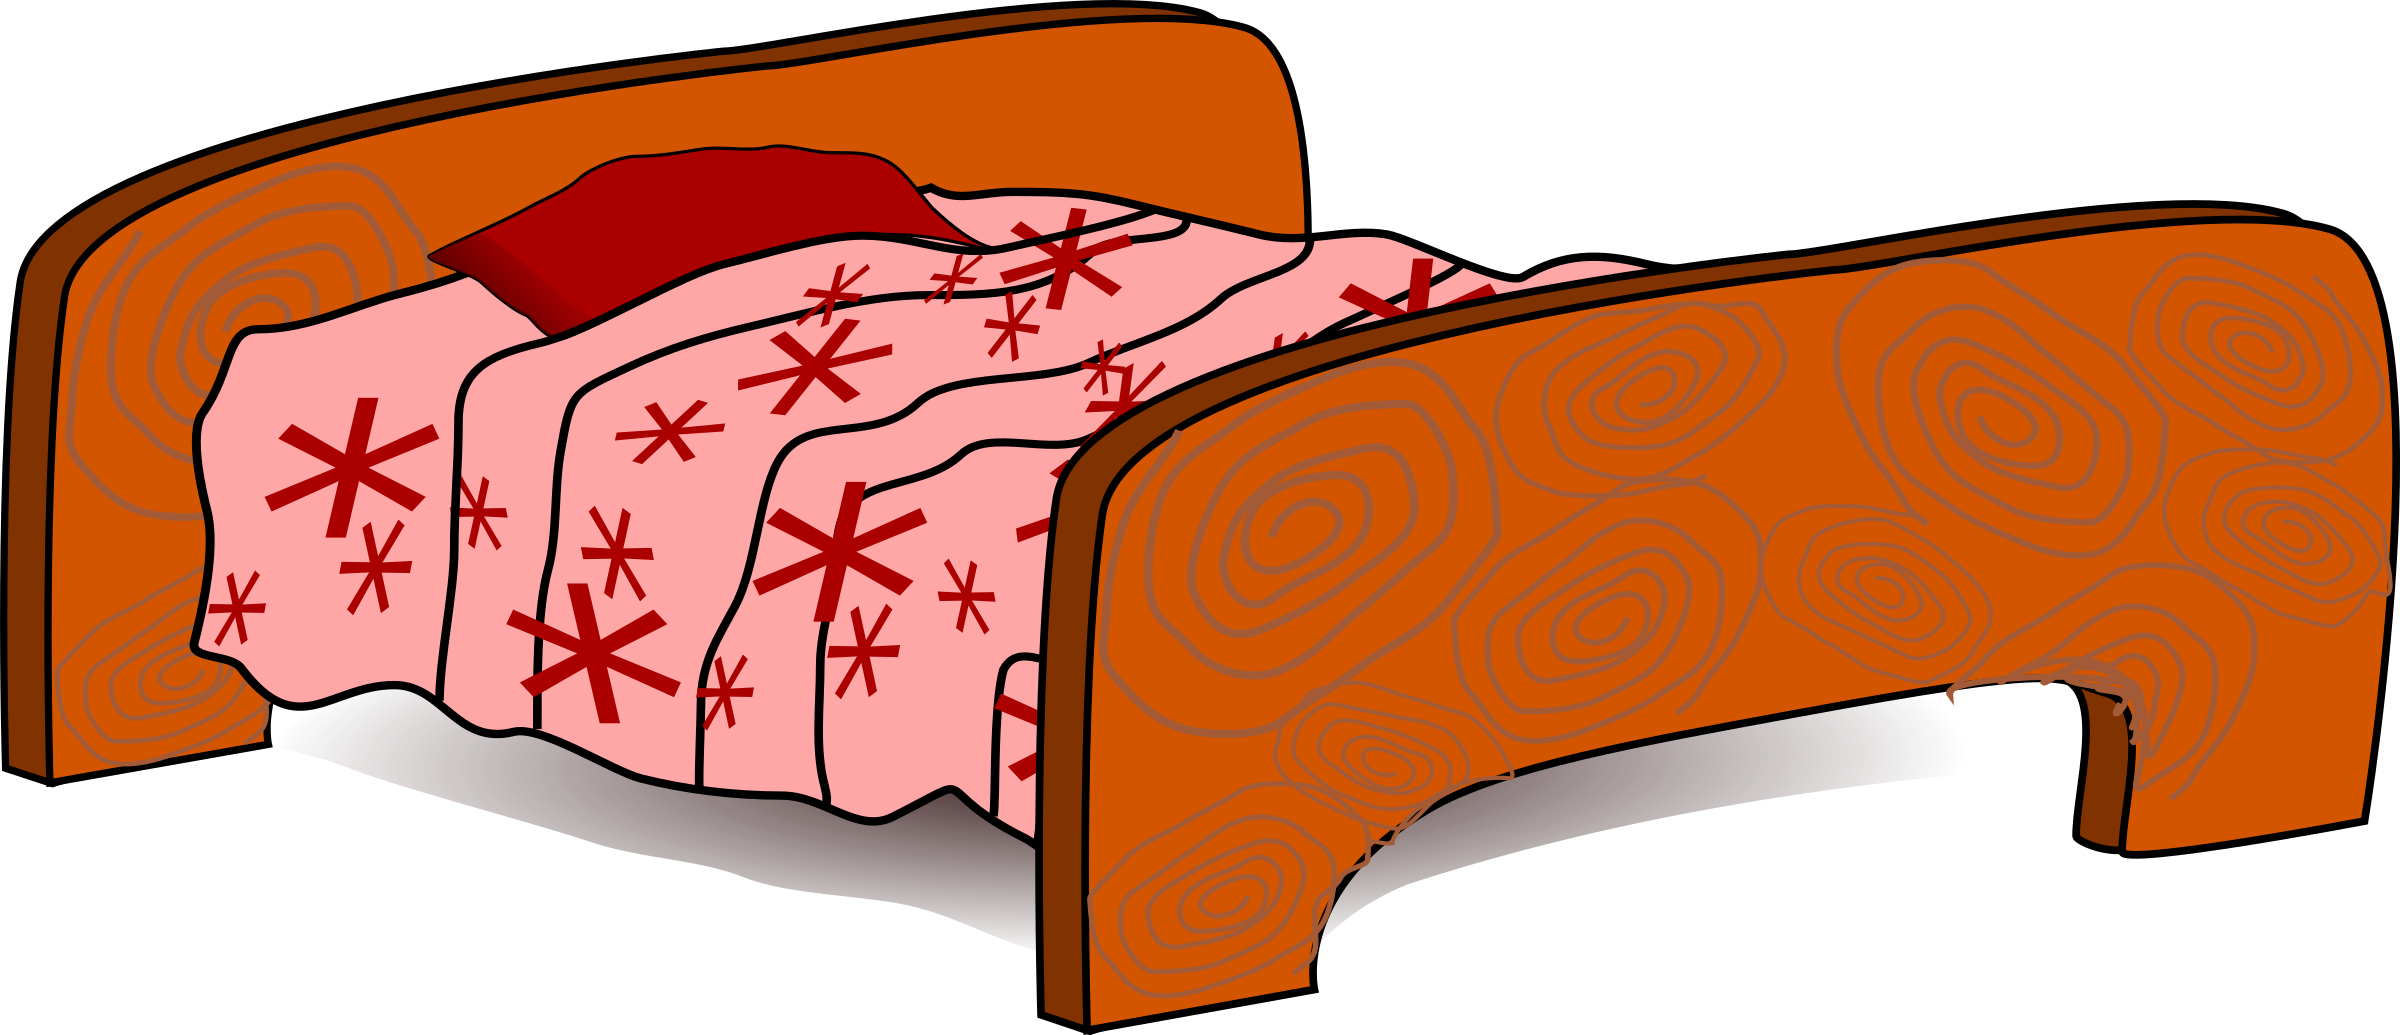 Clipart bed big bed. Image png